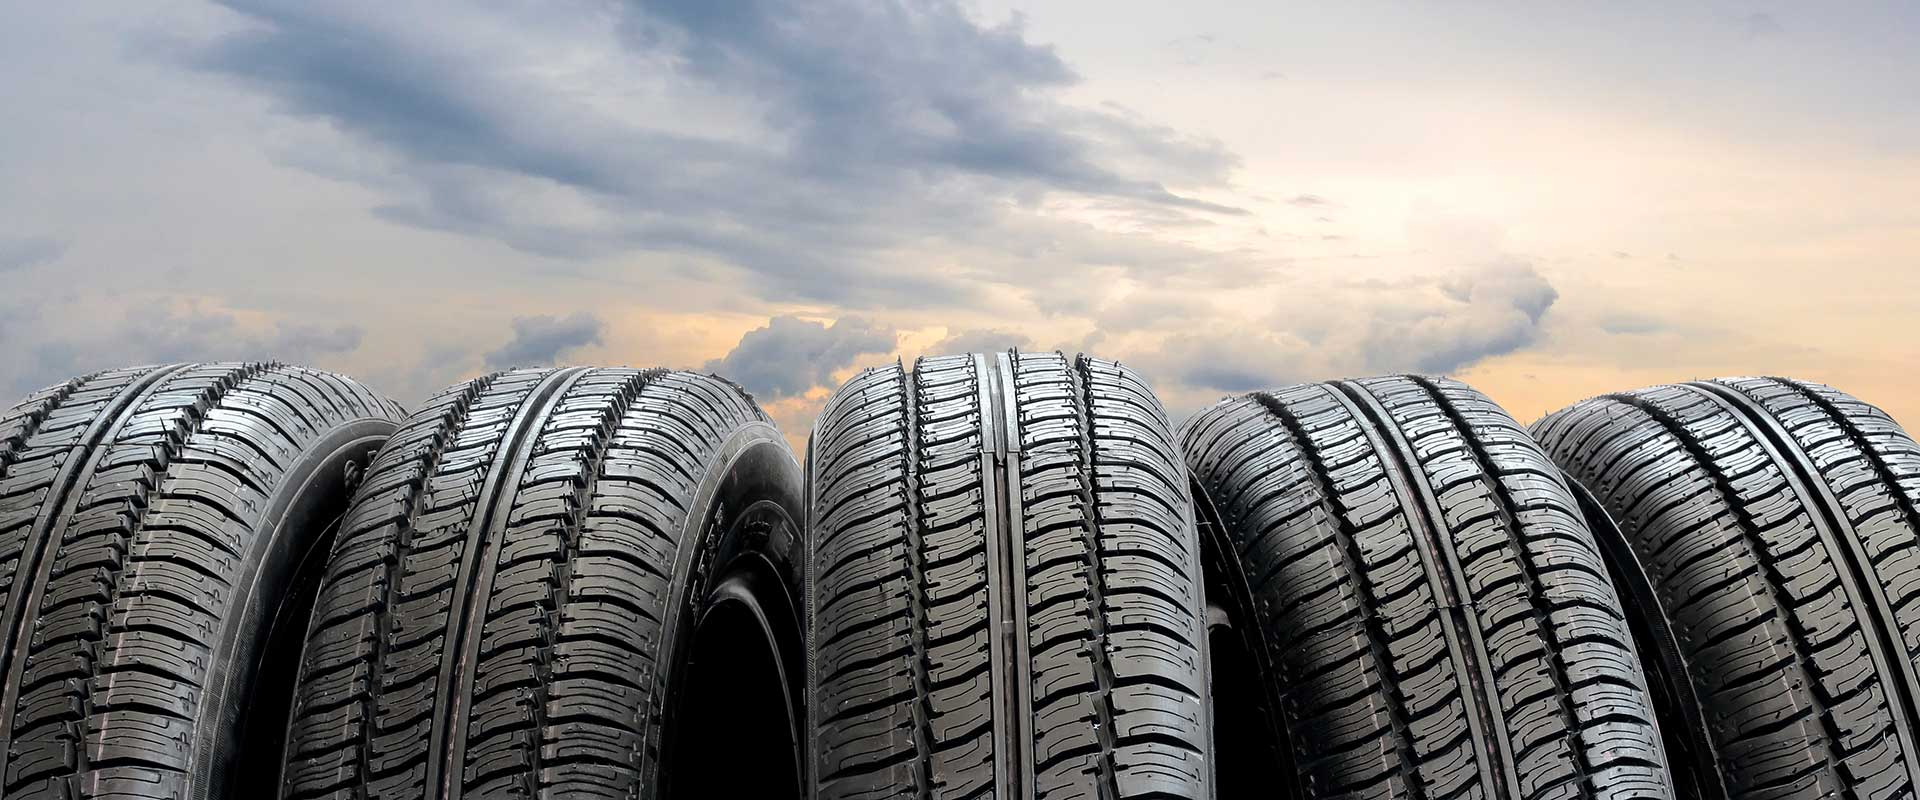 5 tires with a early morning sky background